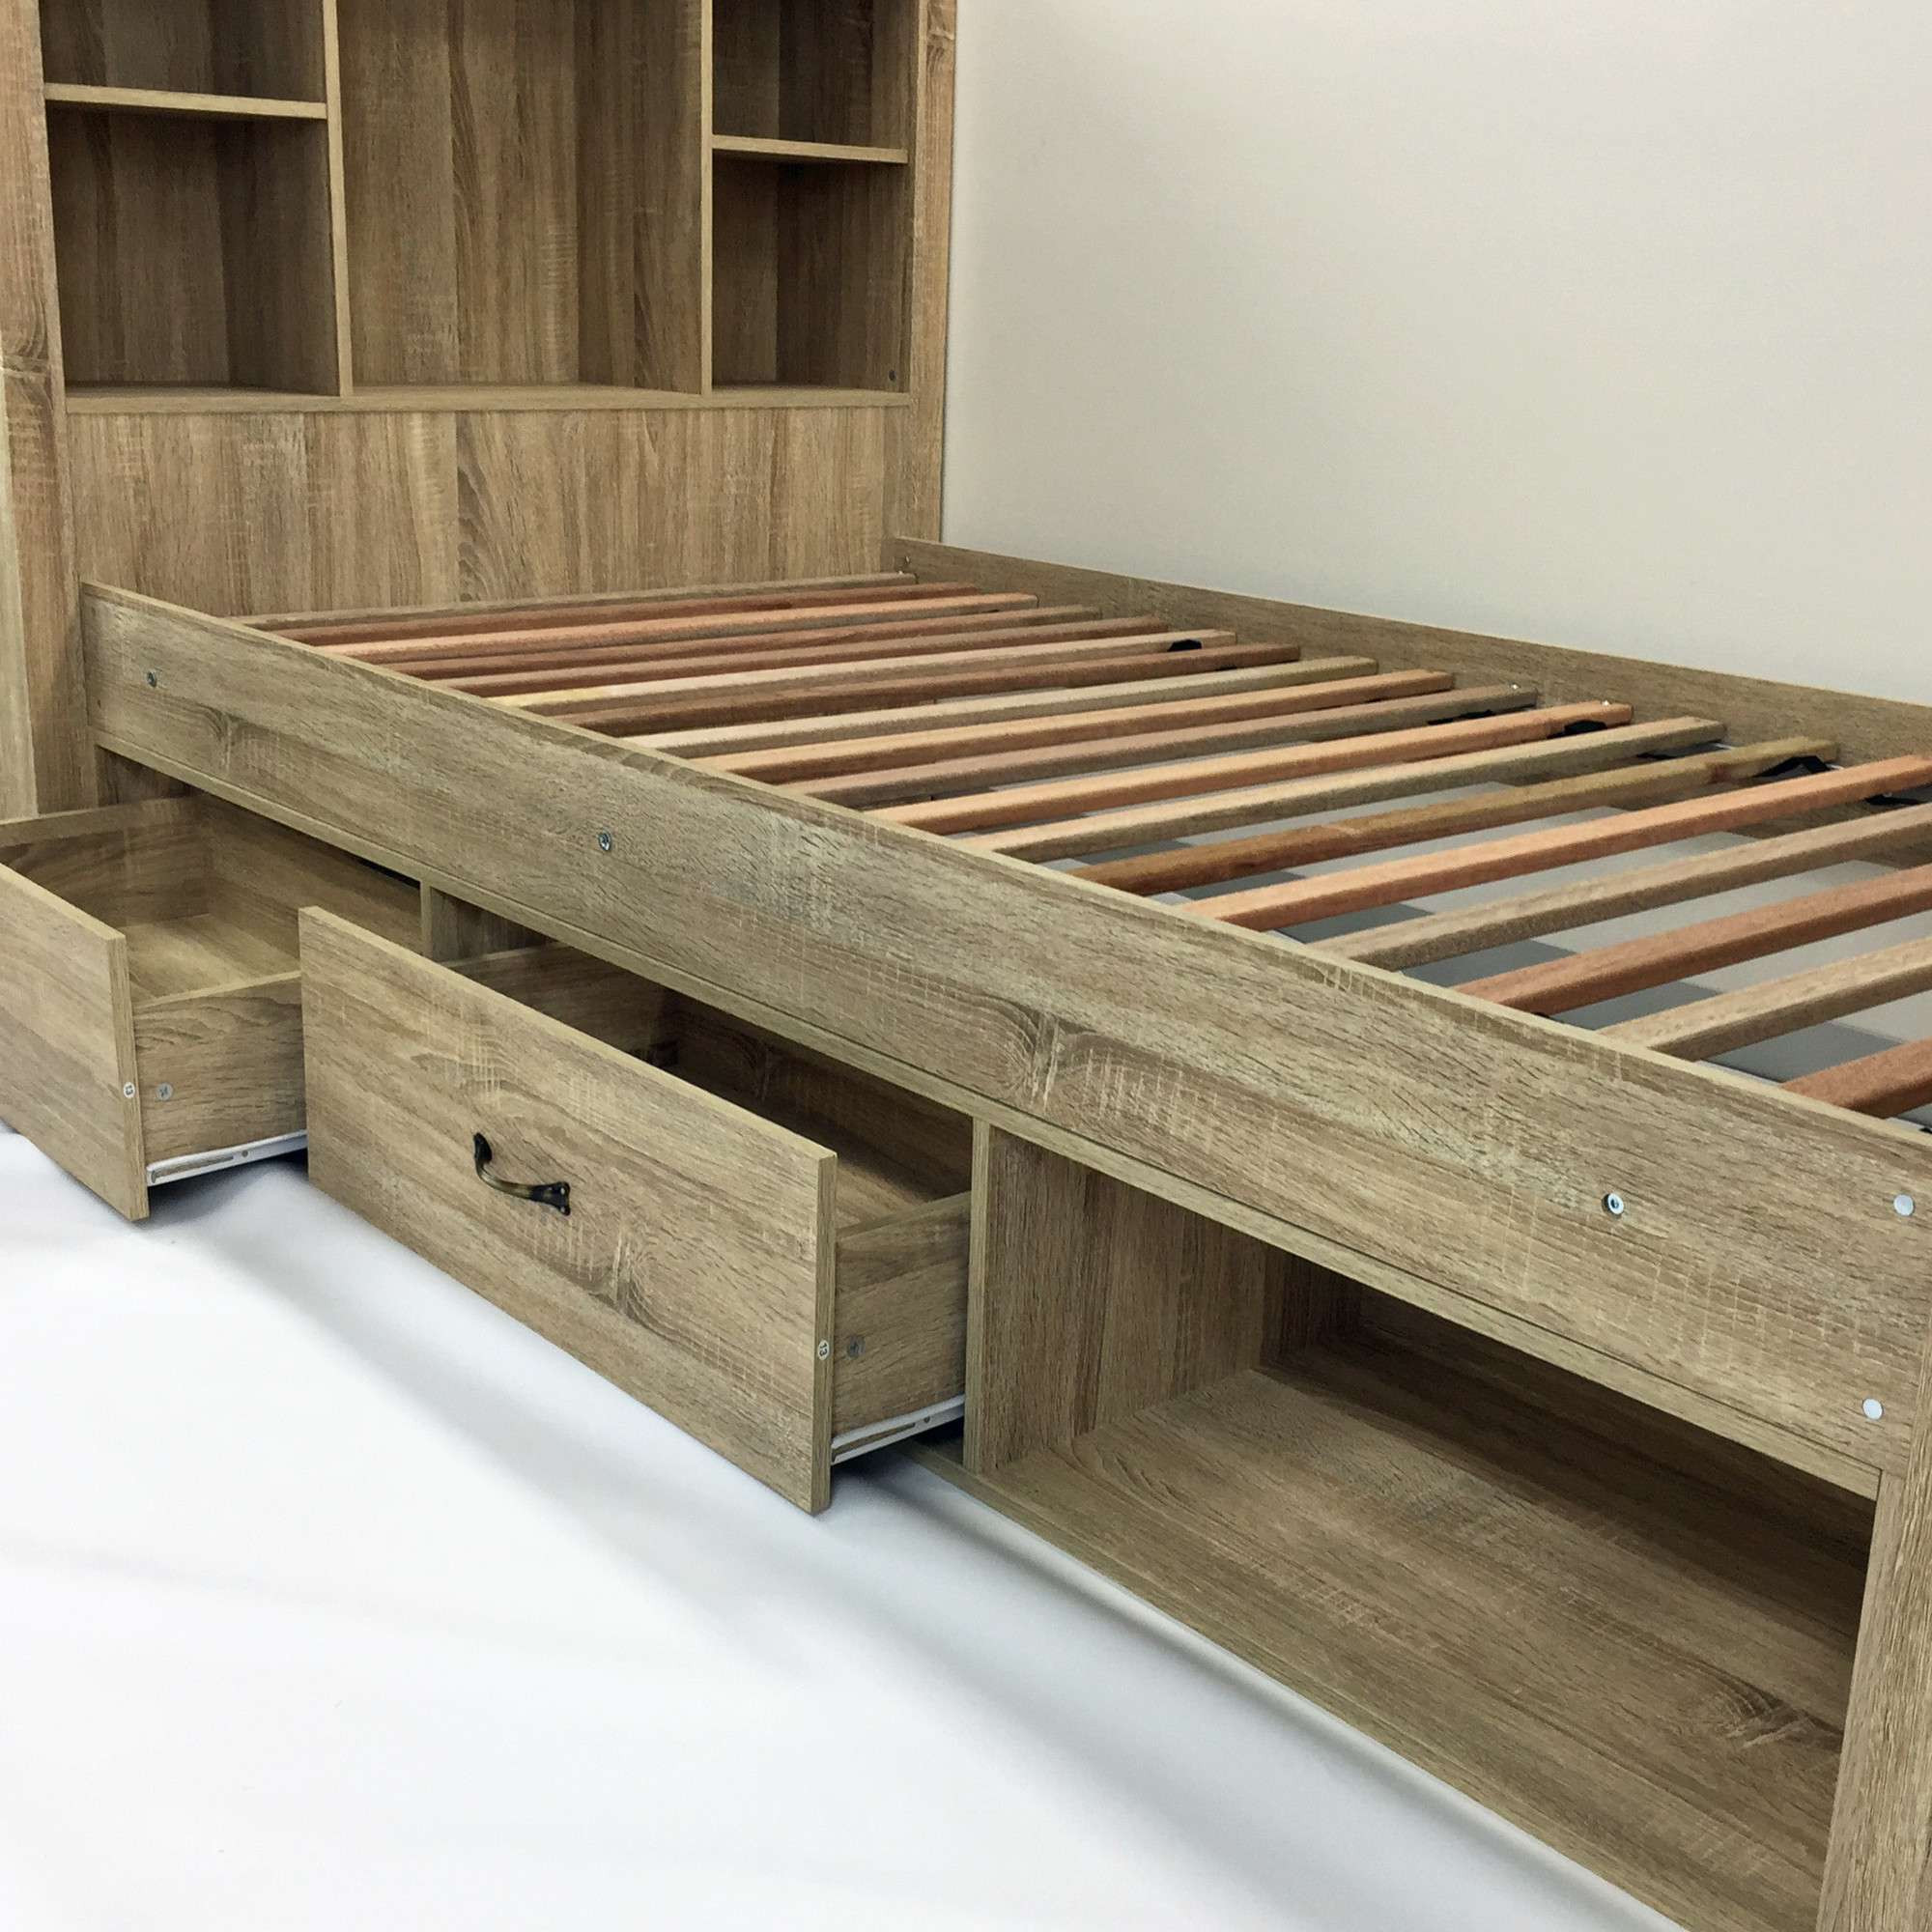 King Single Bed With Drawers Details About New Jeppe Oak King Single Bed With Bookshelves Drawers Vic Furniture Beds